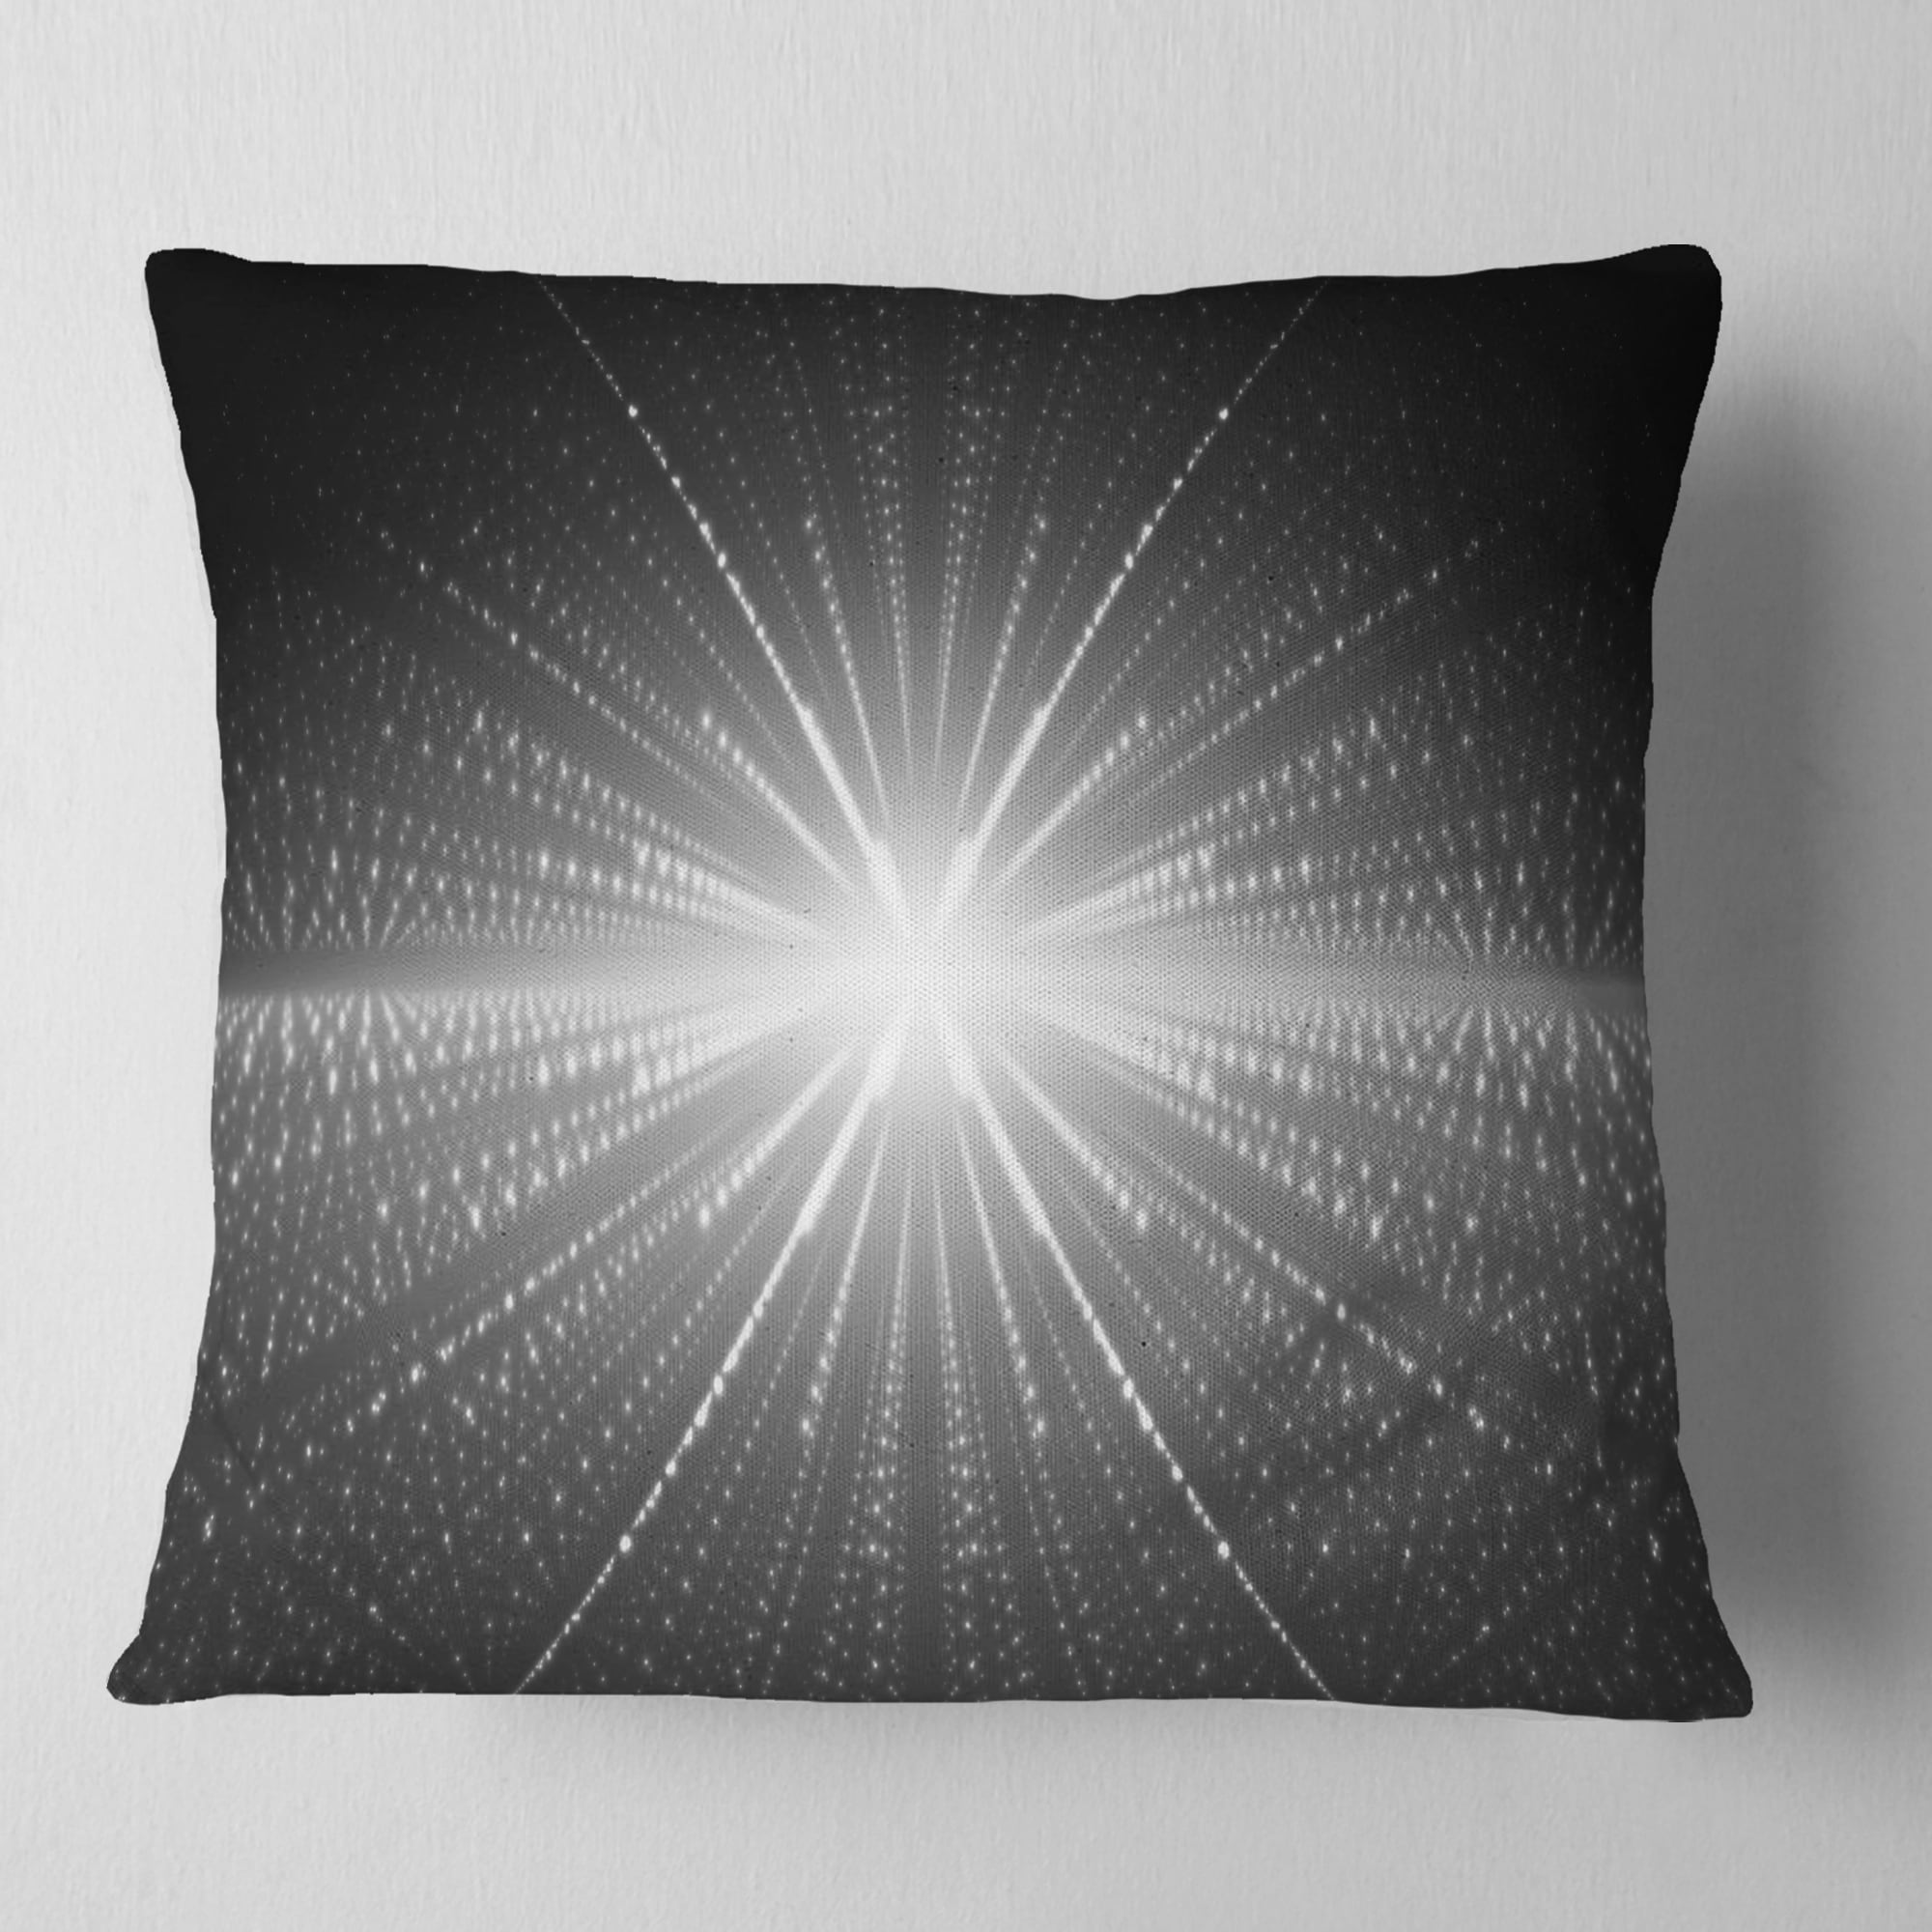 Designart Glowing Star In Cosmic Galaxy Abstract Throw Pillow Overstock 20953424